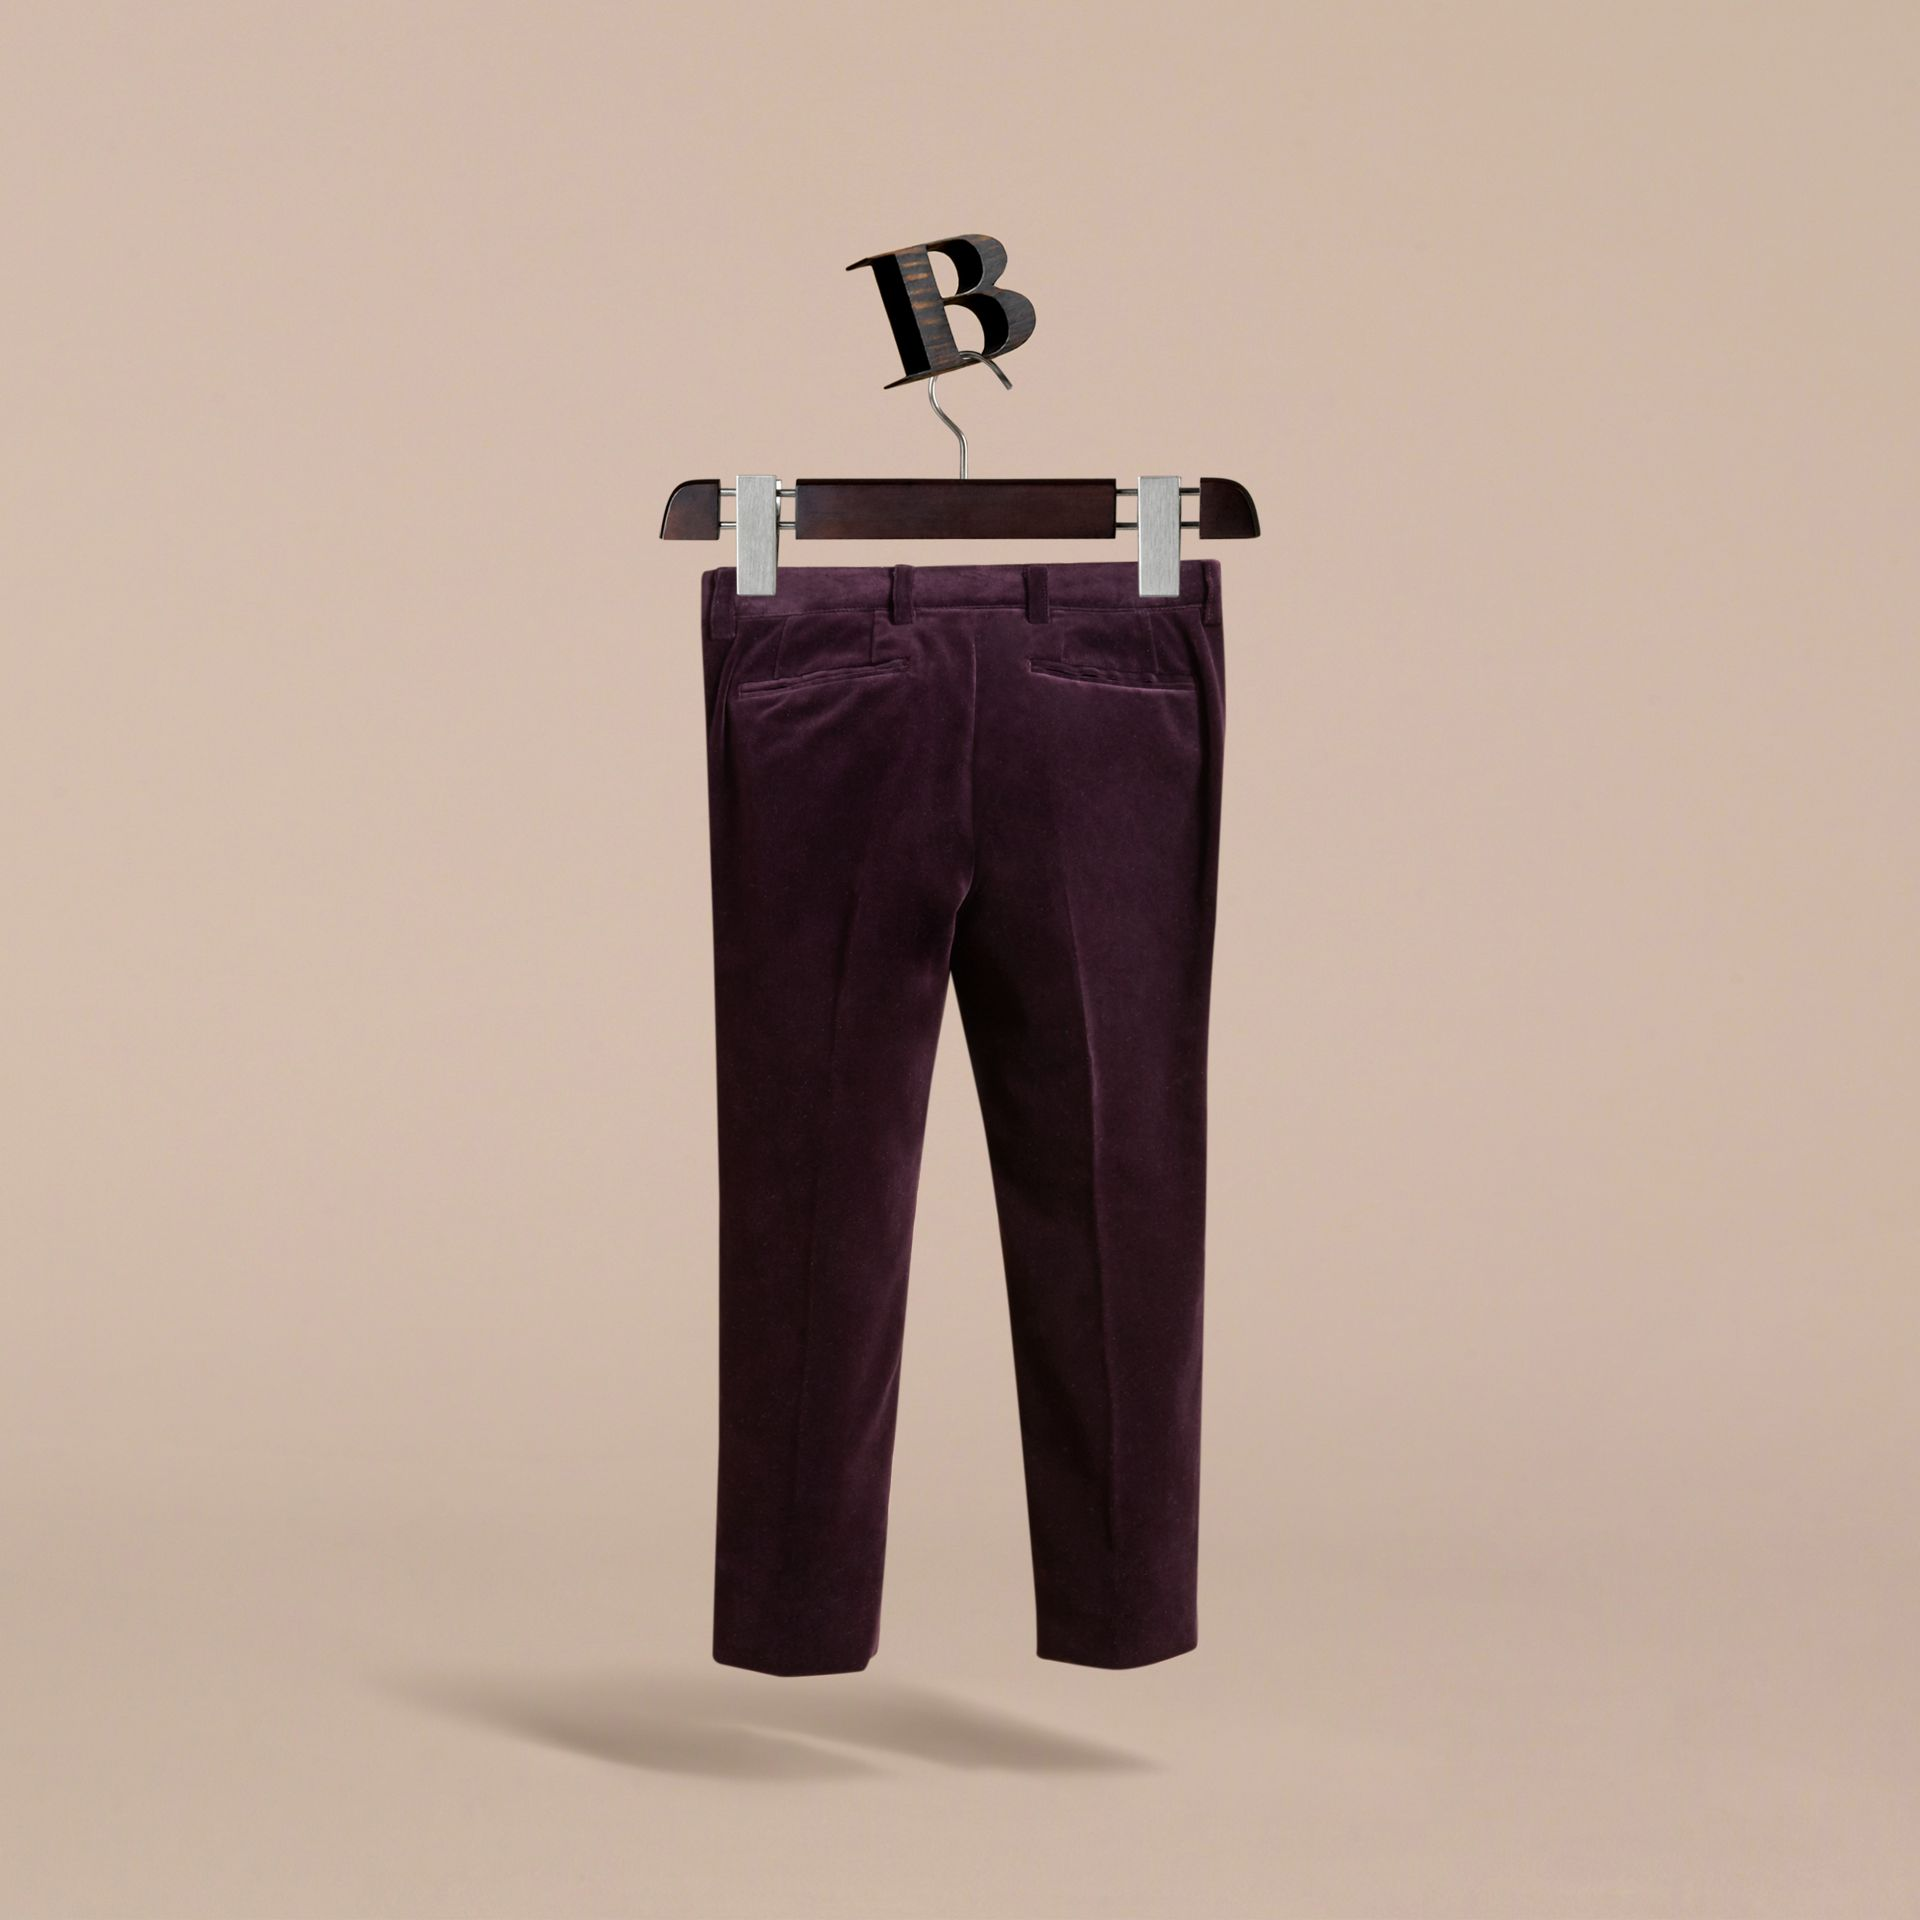 Tailored Velvet Tuxedo Trousers in Black Currant - Boy | Burberry Australia - gallery image 3